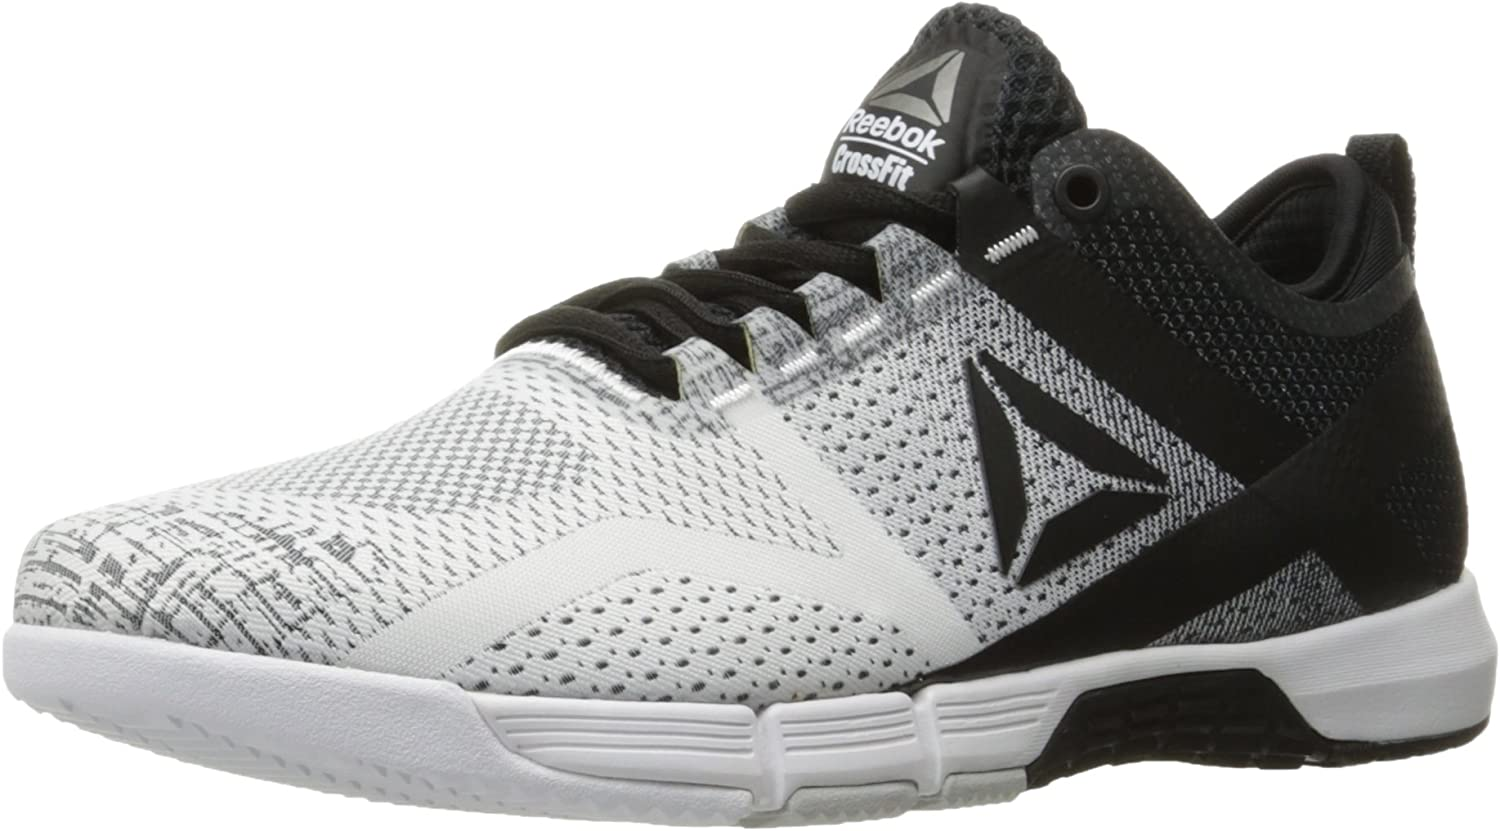 Reebok Women s CROSSFIT Grace Tr Cross Trainer